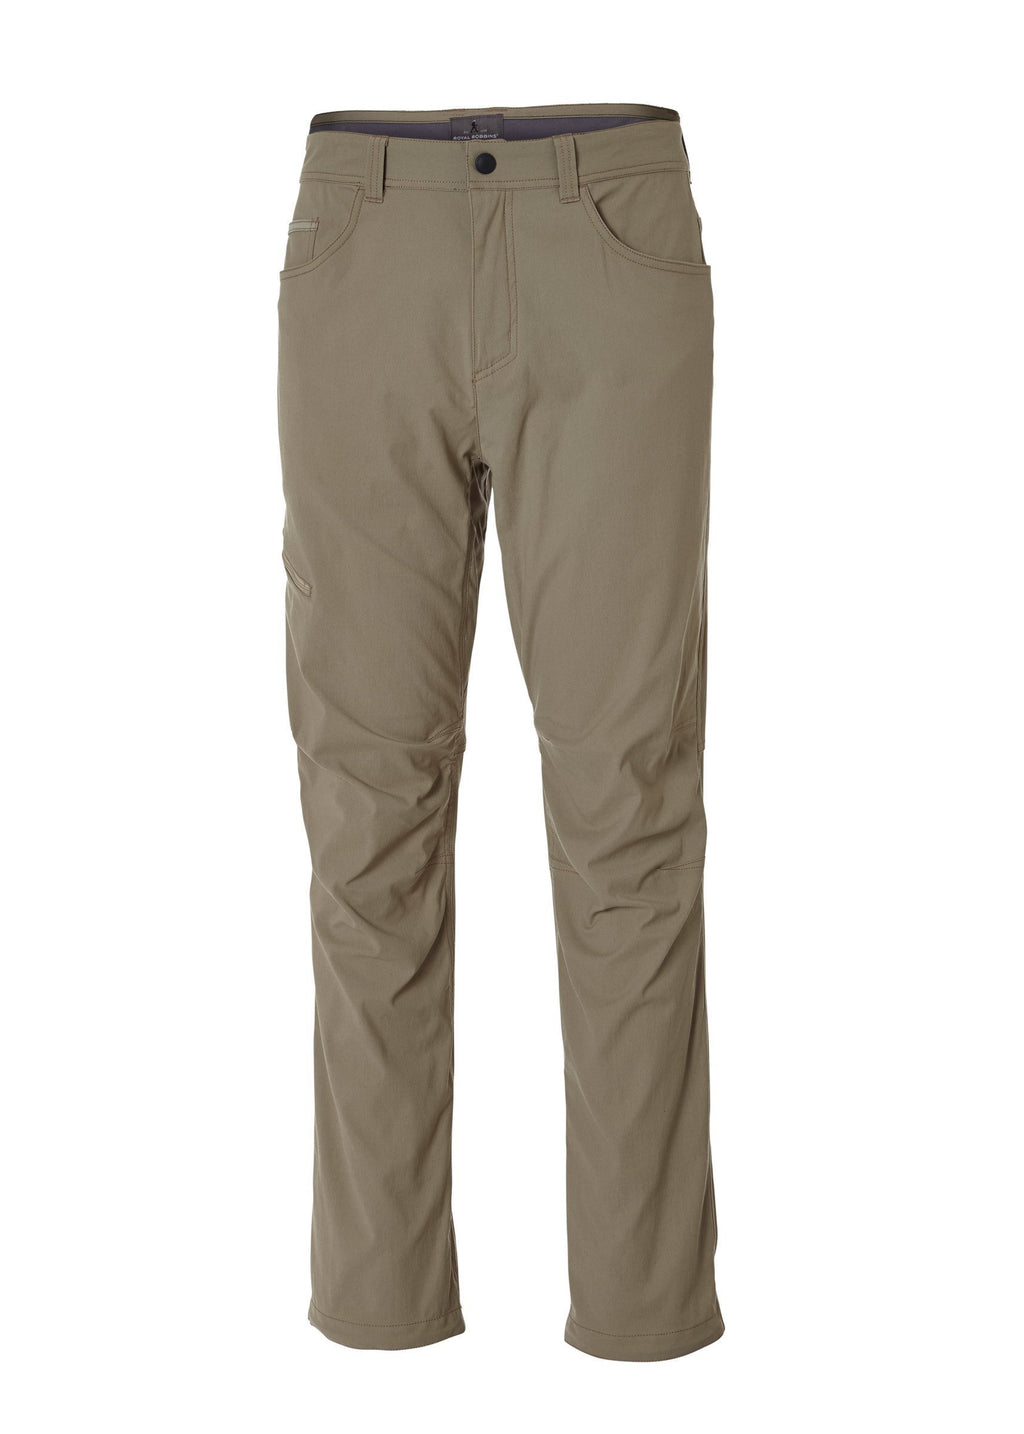 products/S19_44157_ALPINE_ROAD_PANT_KHAKI_059_1154_aaafdcb4-45a4-4875-8e40-8ae810c81158.jpg